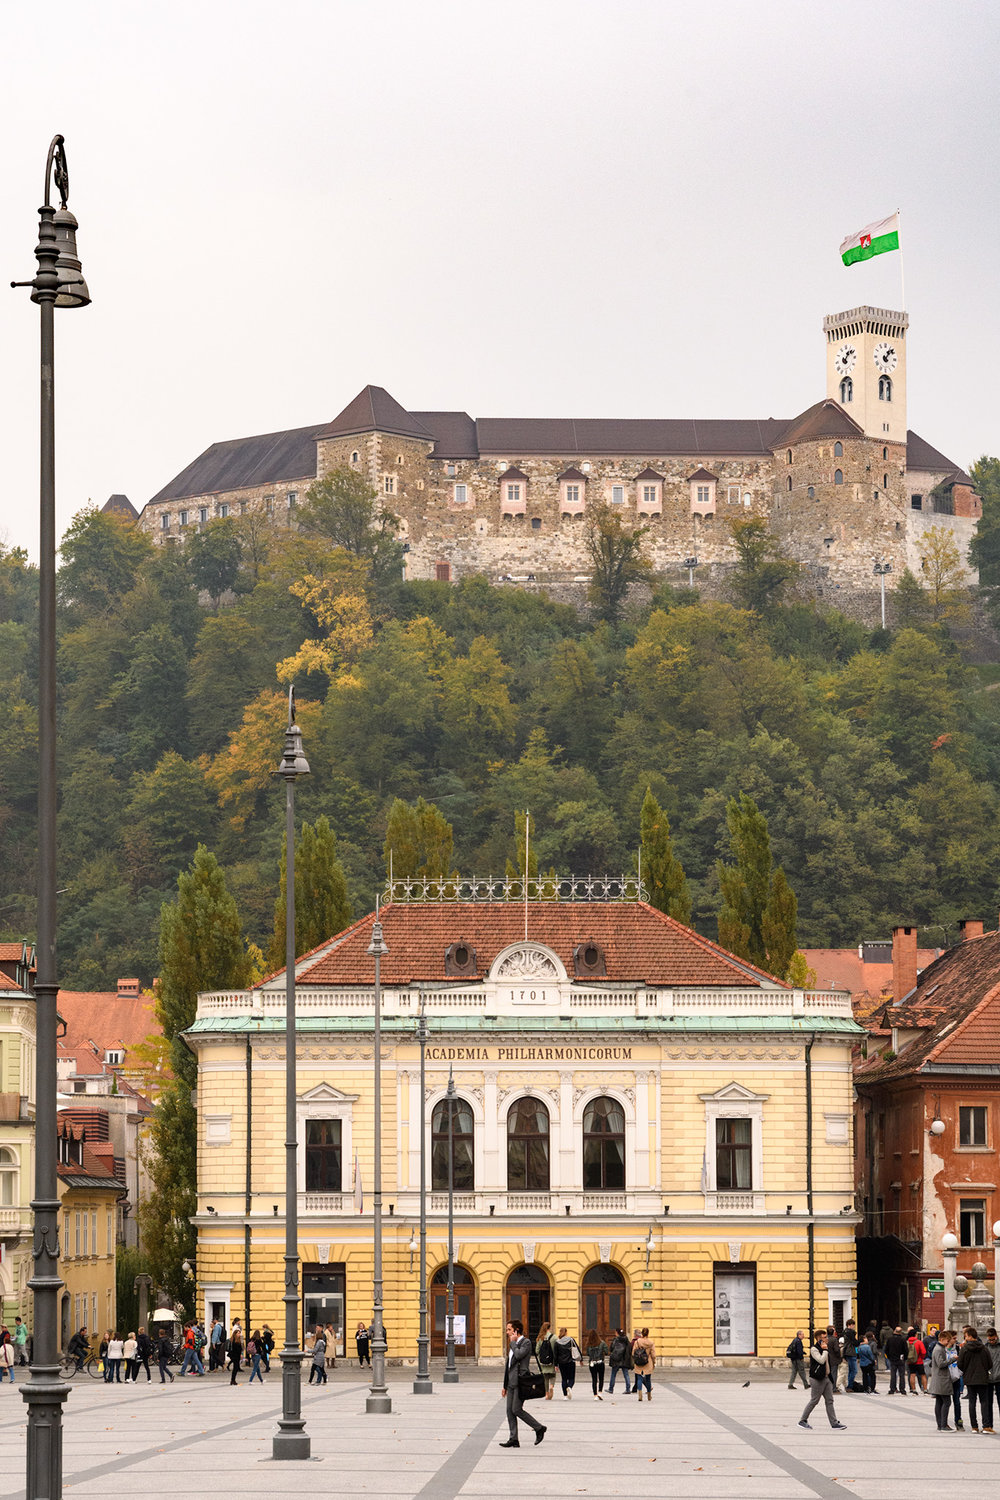 The opera house in Kongresni Square with the LjubljanaCastle looming above.